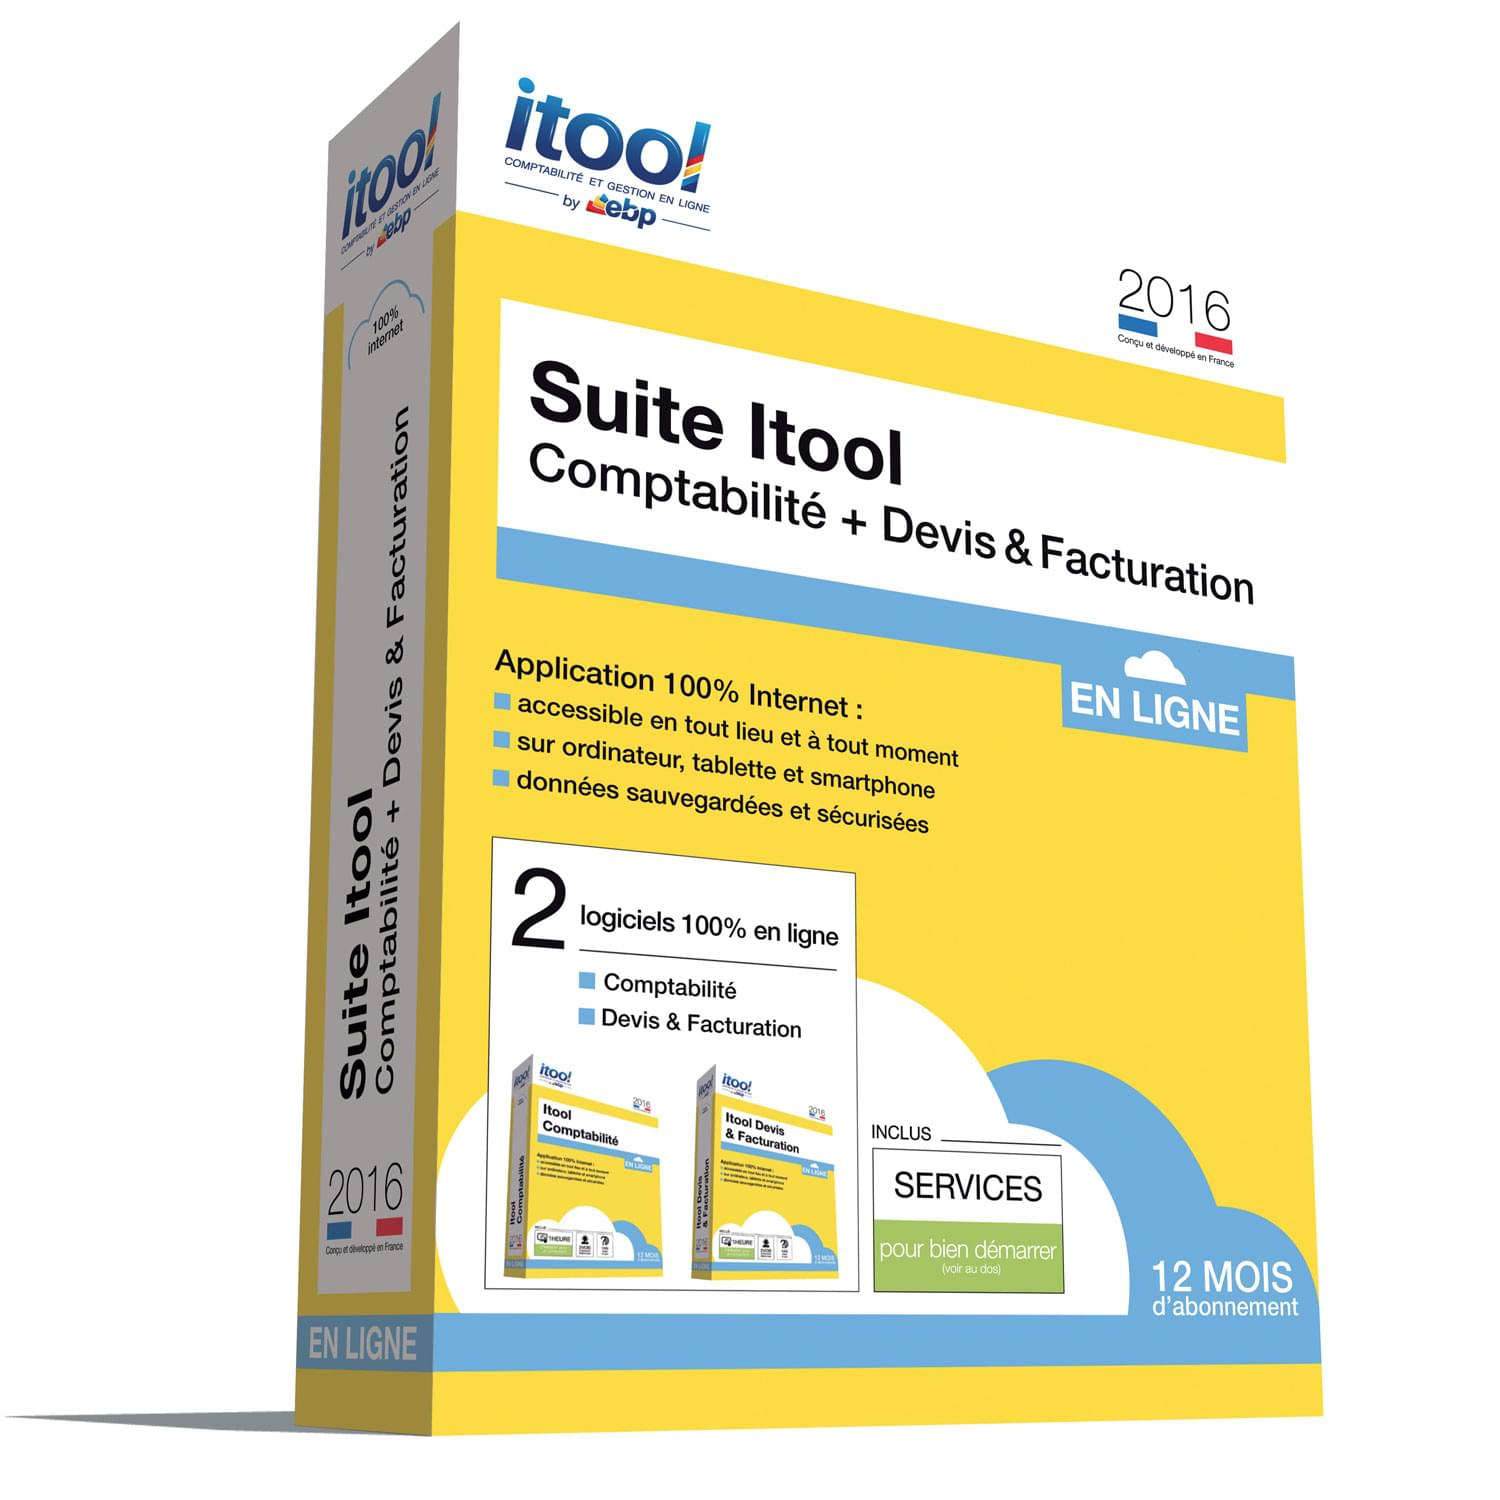 EBP ITOOL Suite Compta & Devis-Factures En Ligne 2016 - Logiciel application - 0